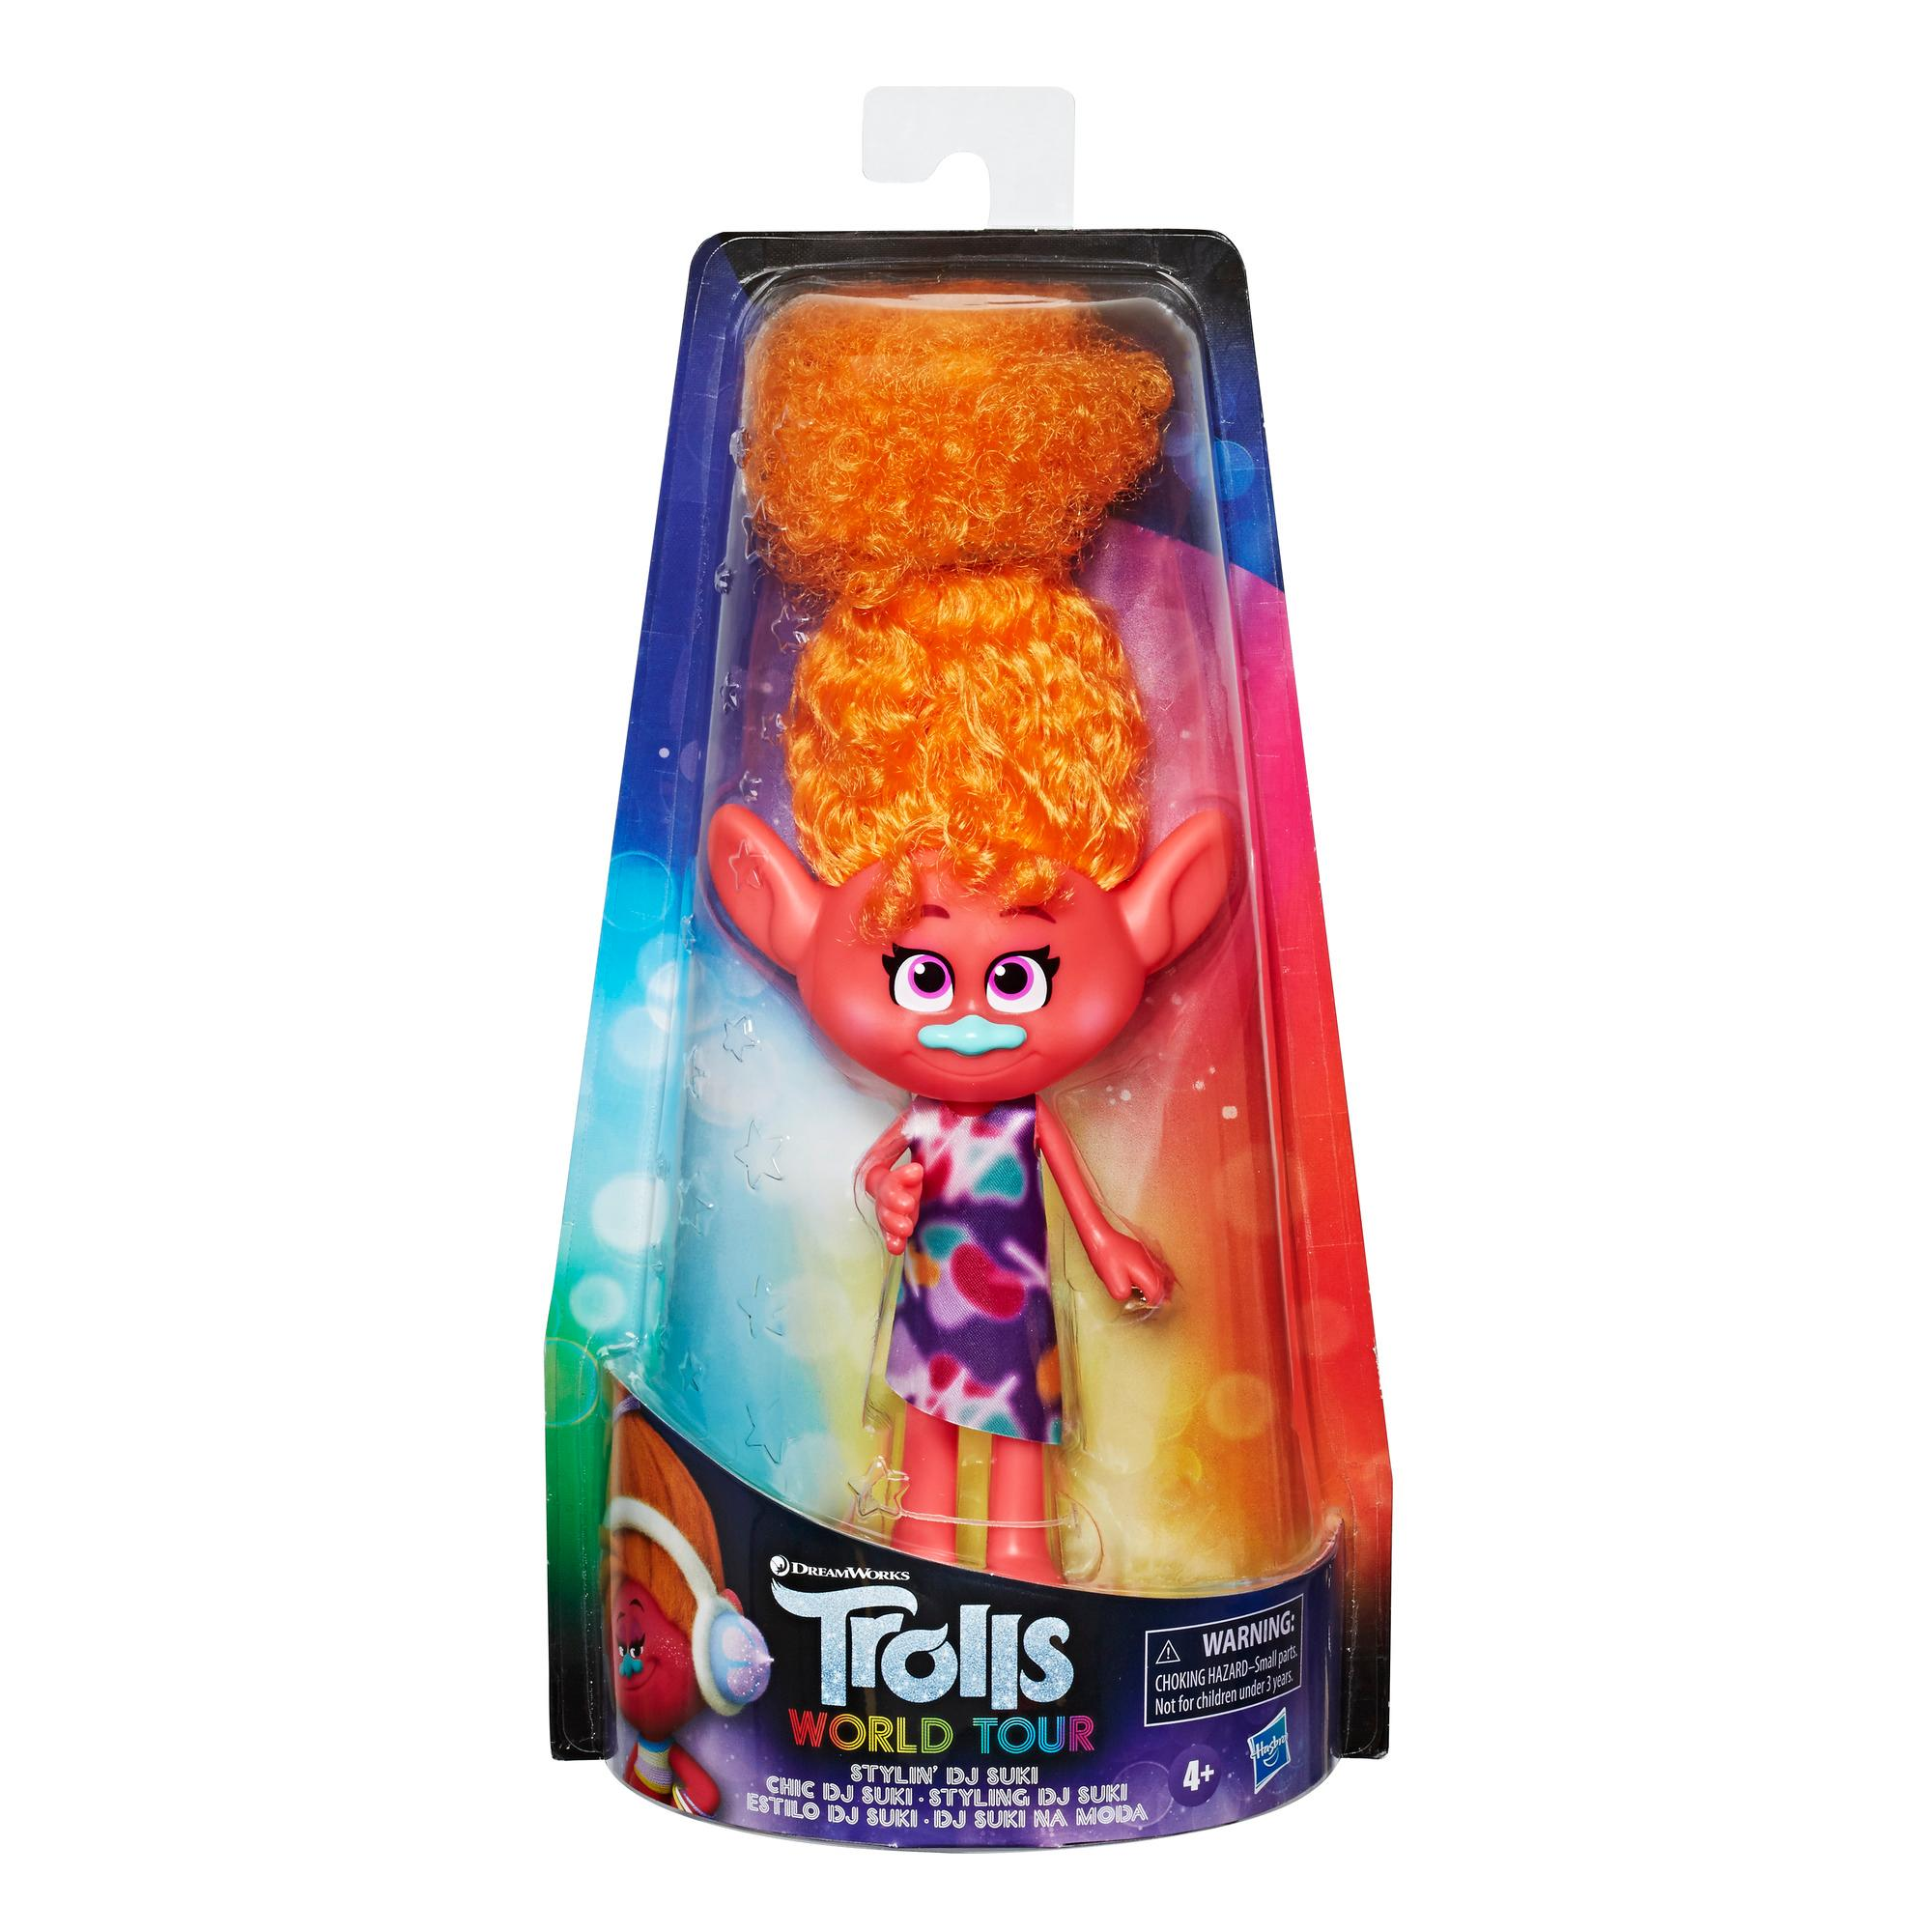 DreamWorks Trolls Stylin' DJ Suki Fashion Doll with Removable Dress and Hair Accessory, Inspired by Trolls World Tour